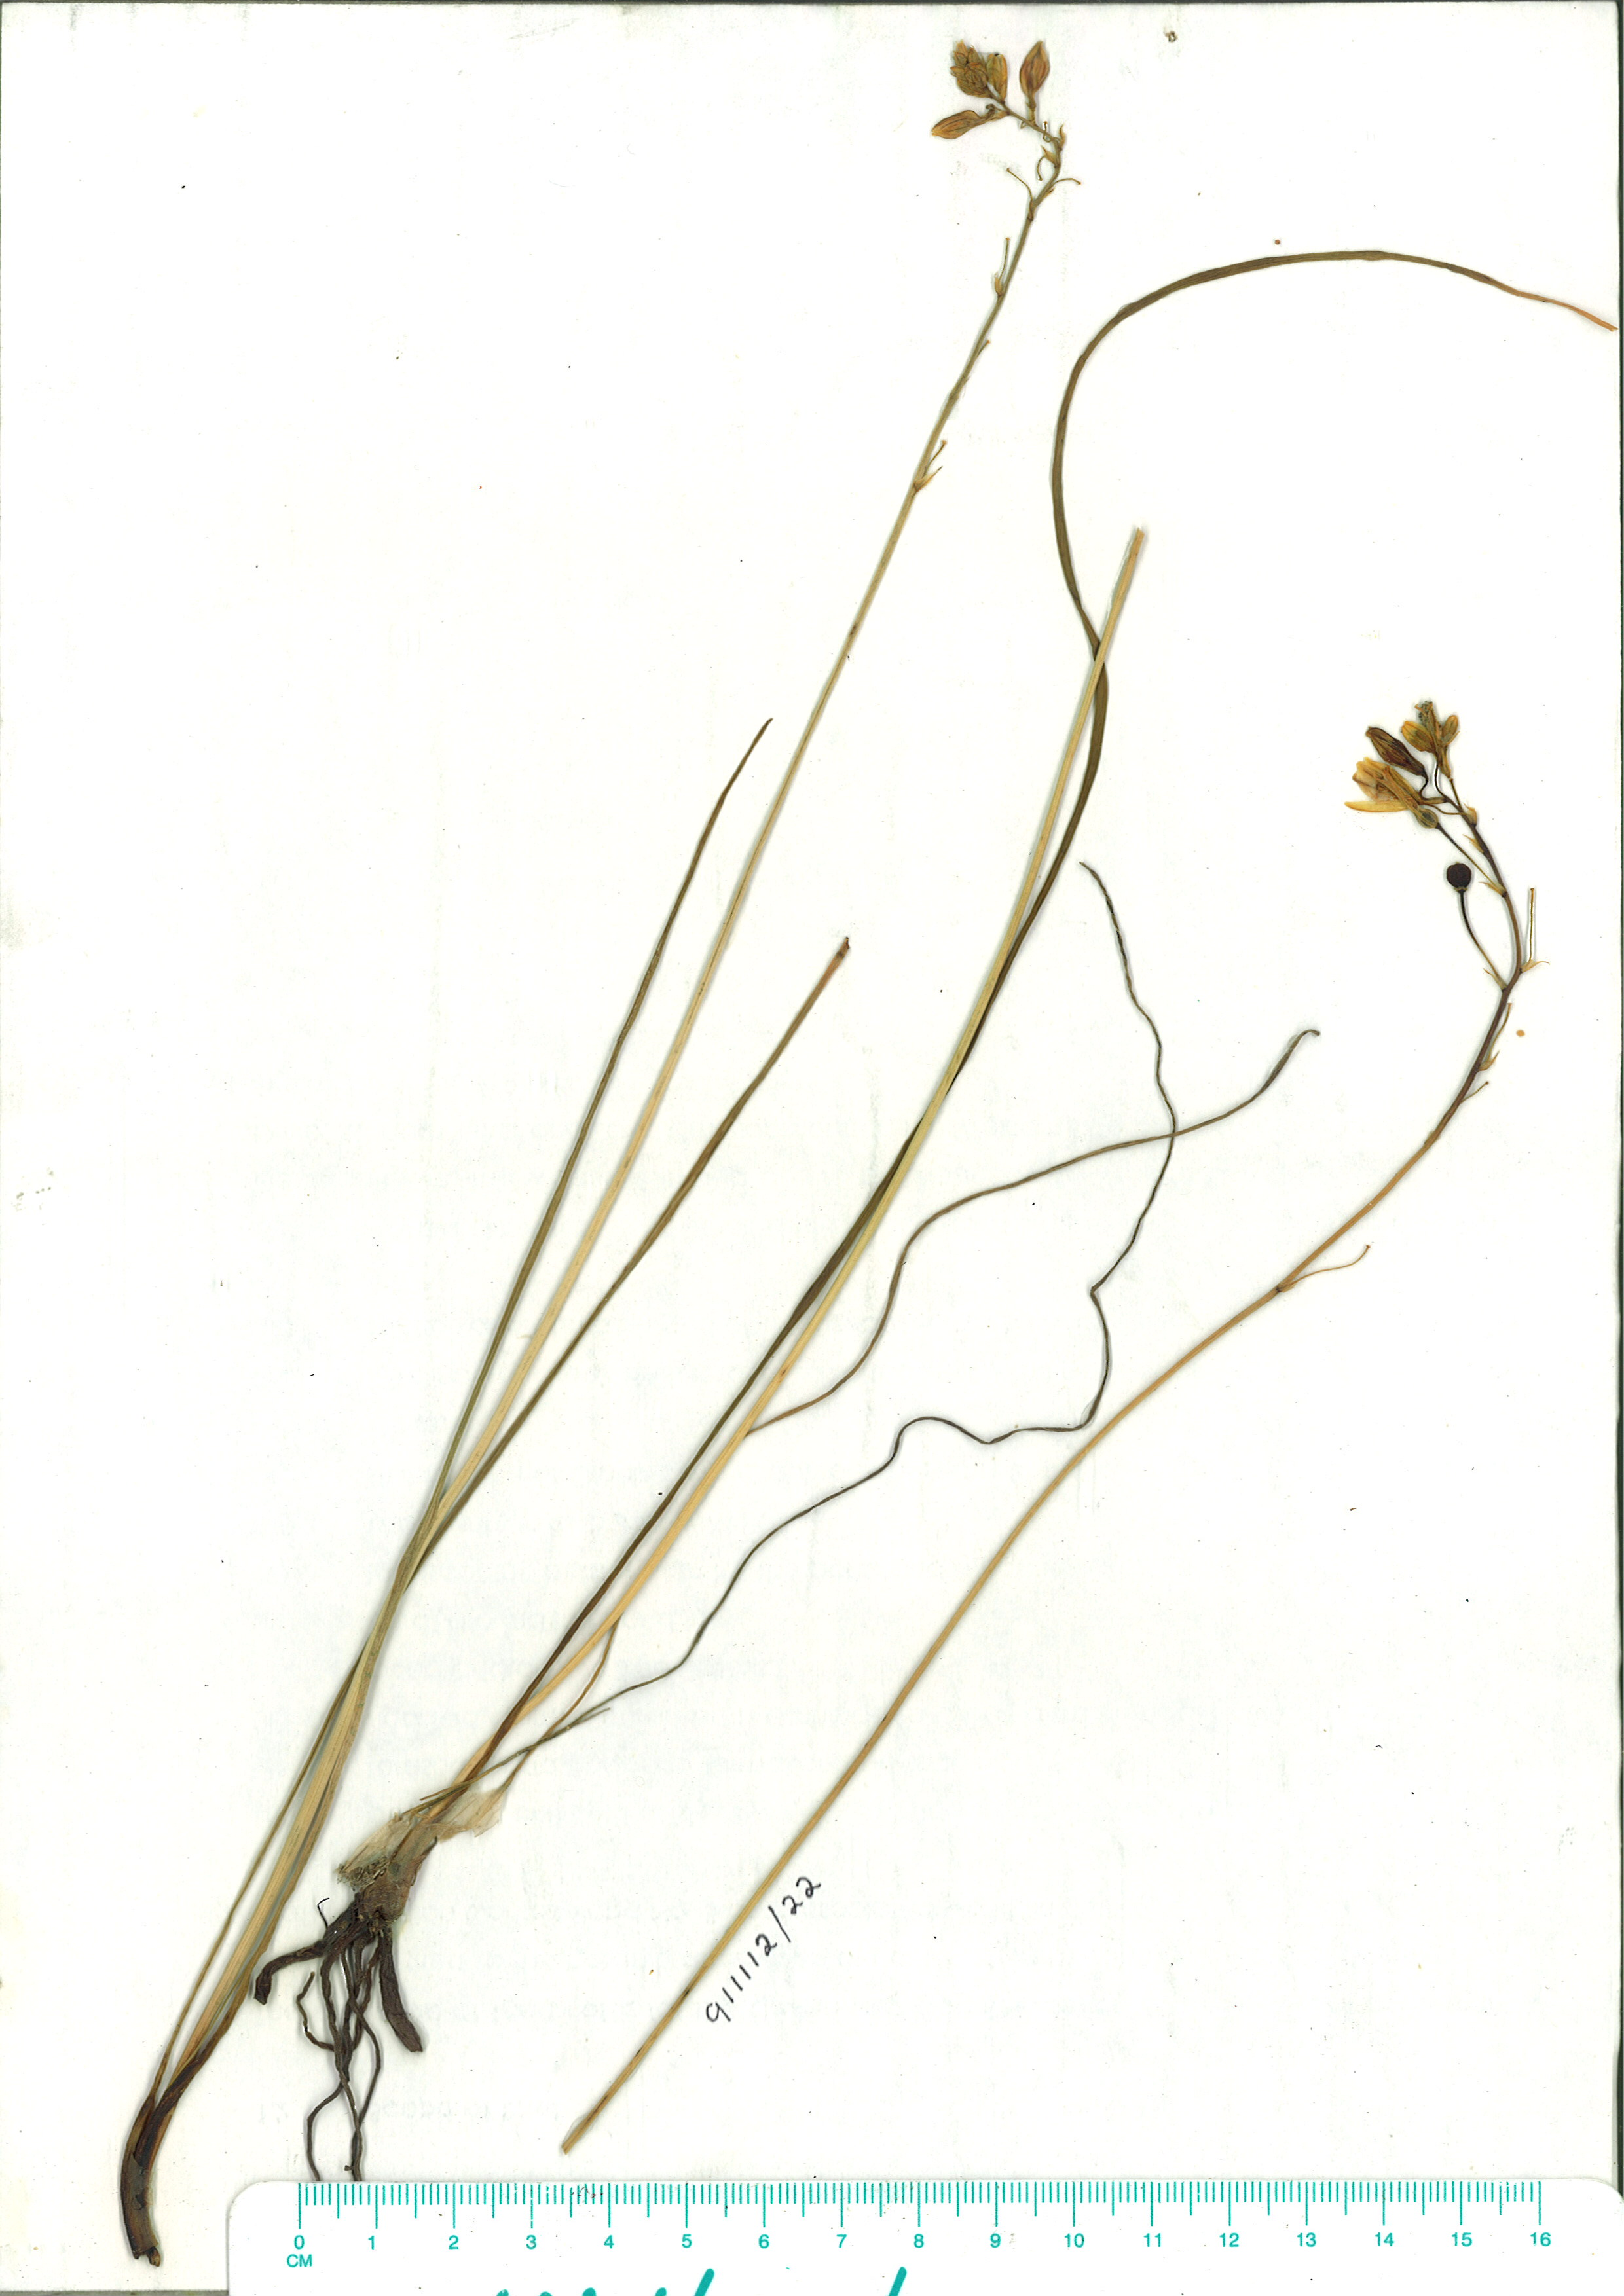 Scanned herbarium image of Bulbine semibarbata